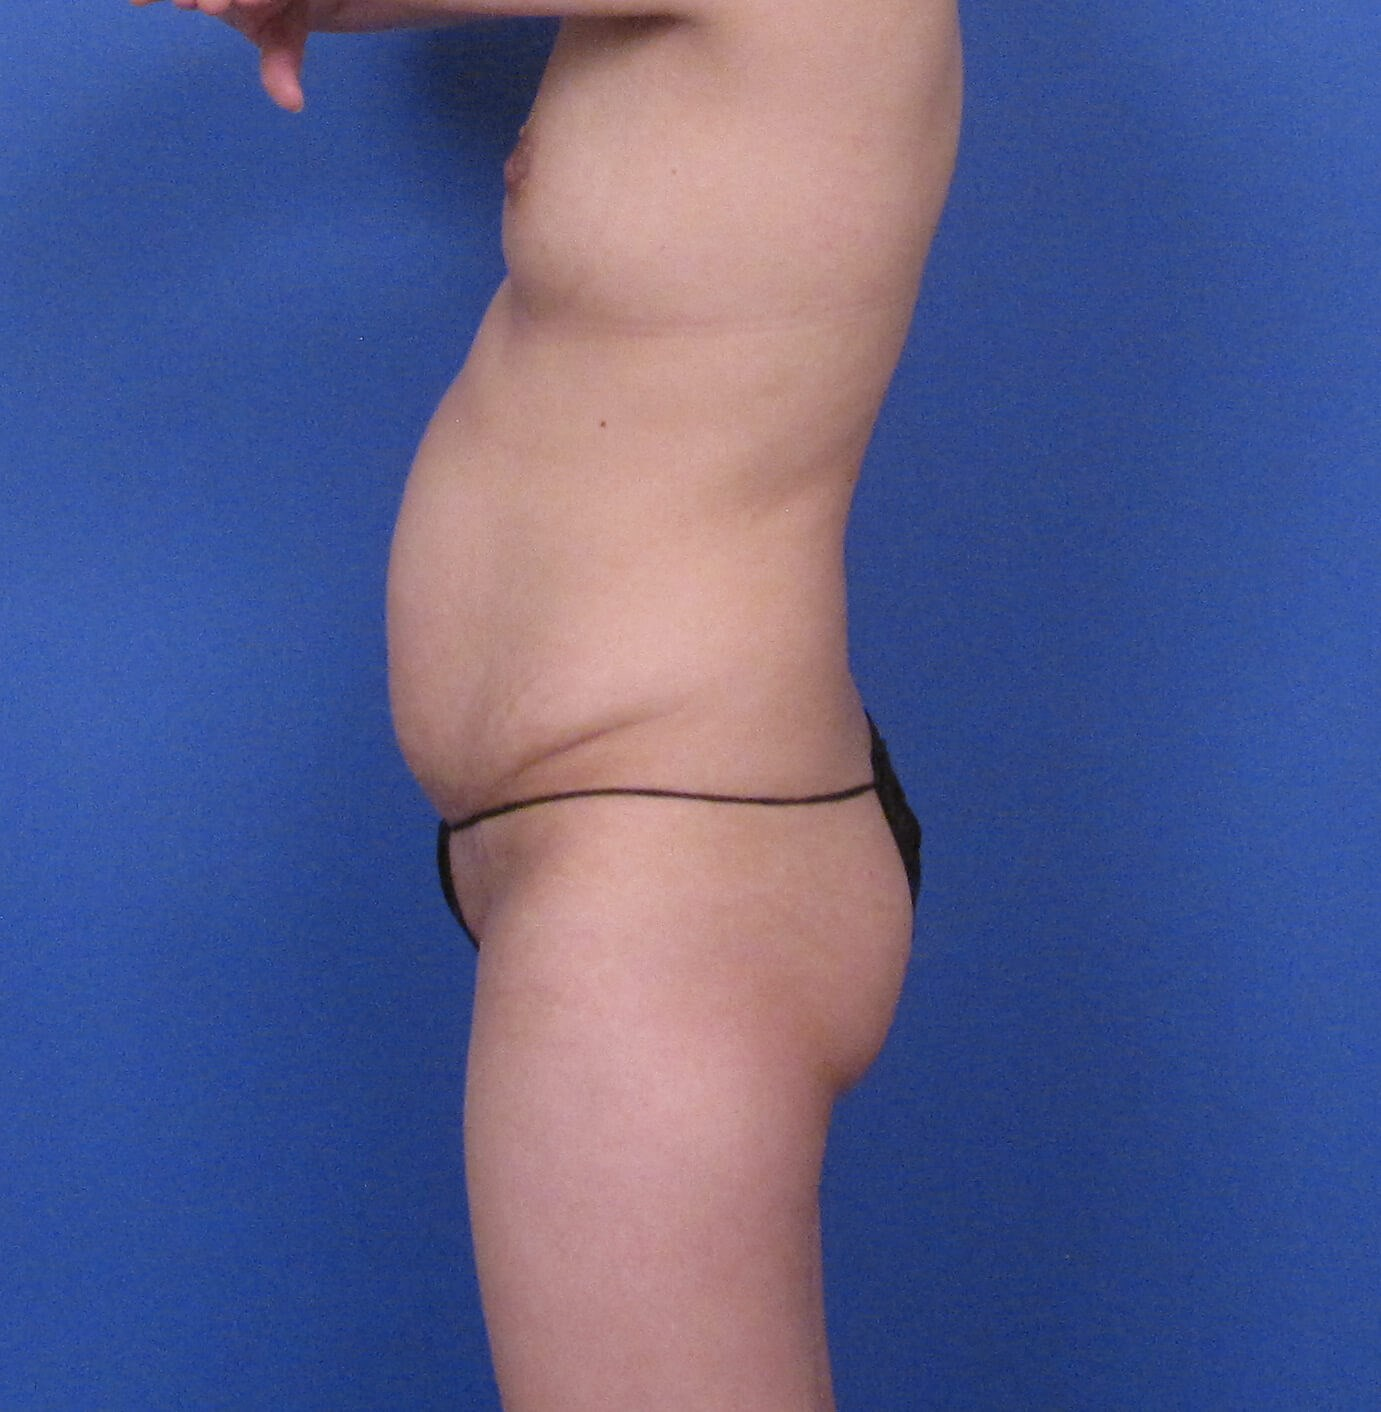 Tummy Tuck and Liposuction Before